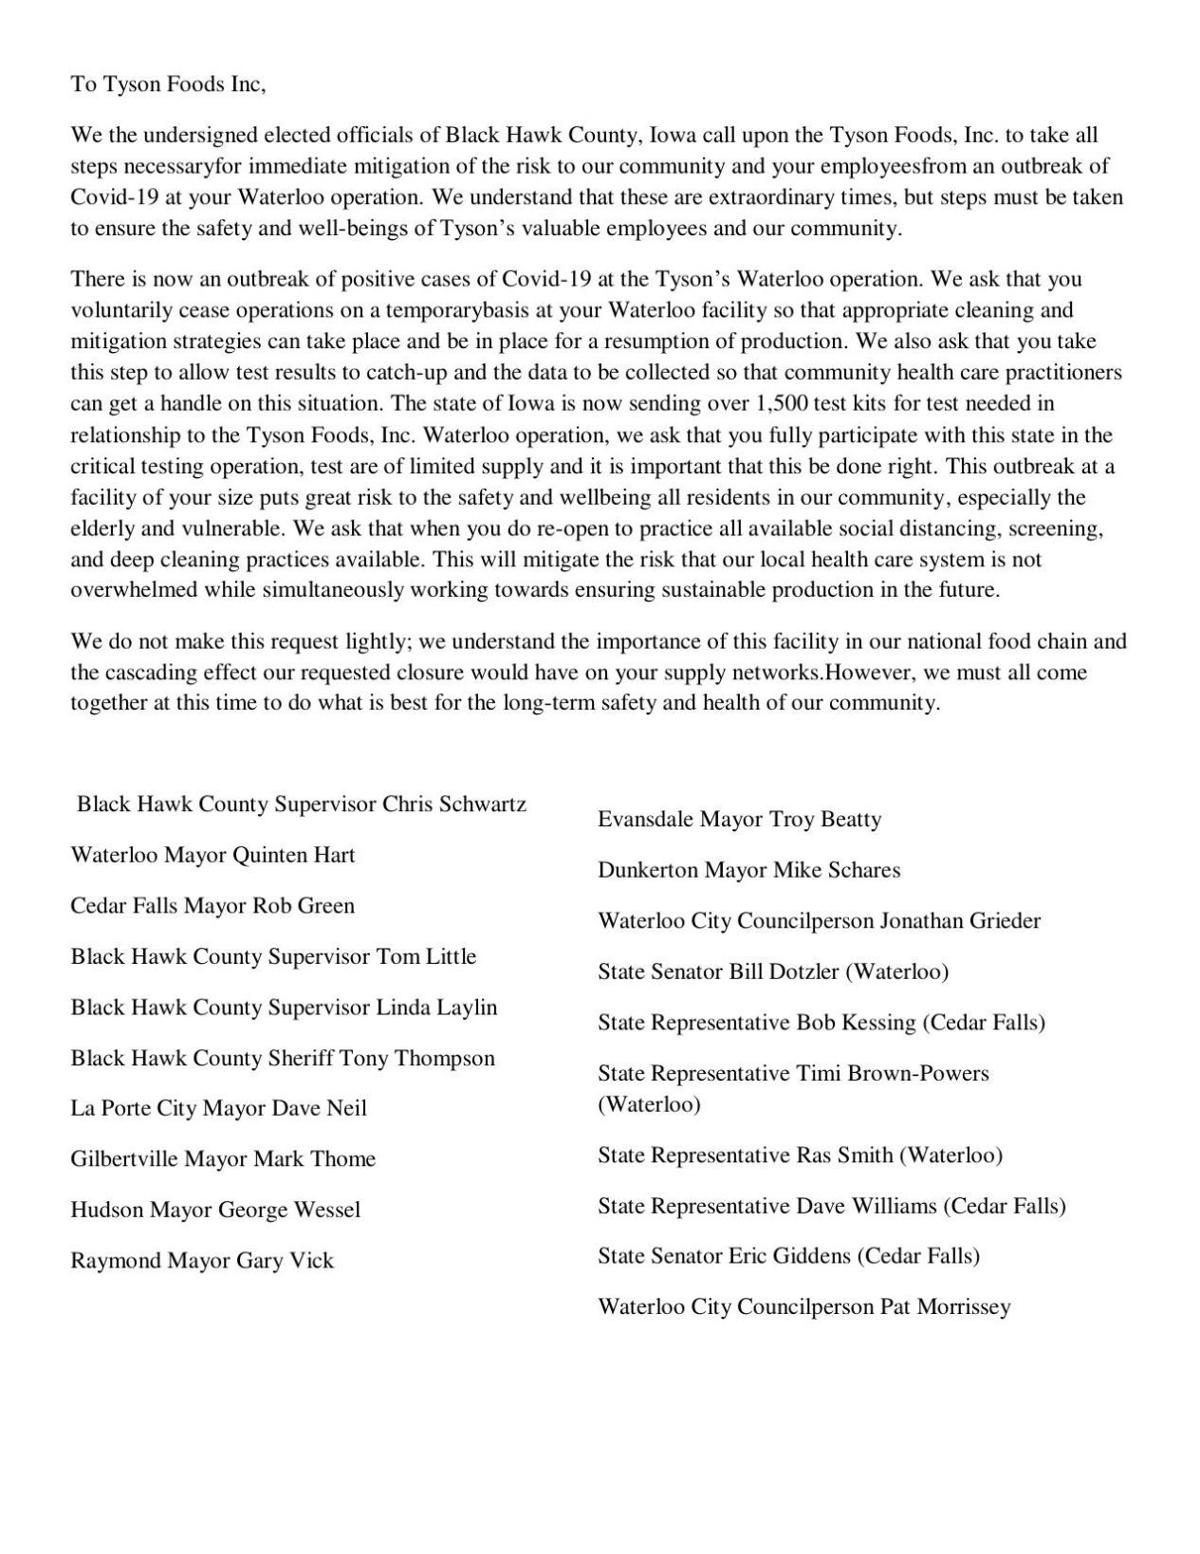 READ: The letter to Tyson from 20 Black Hawk County elected officials